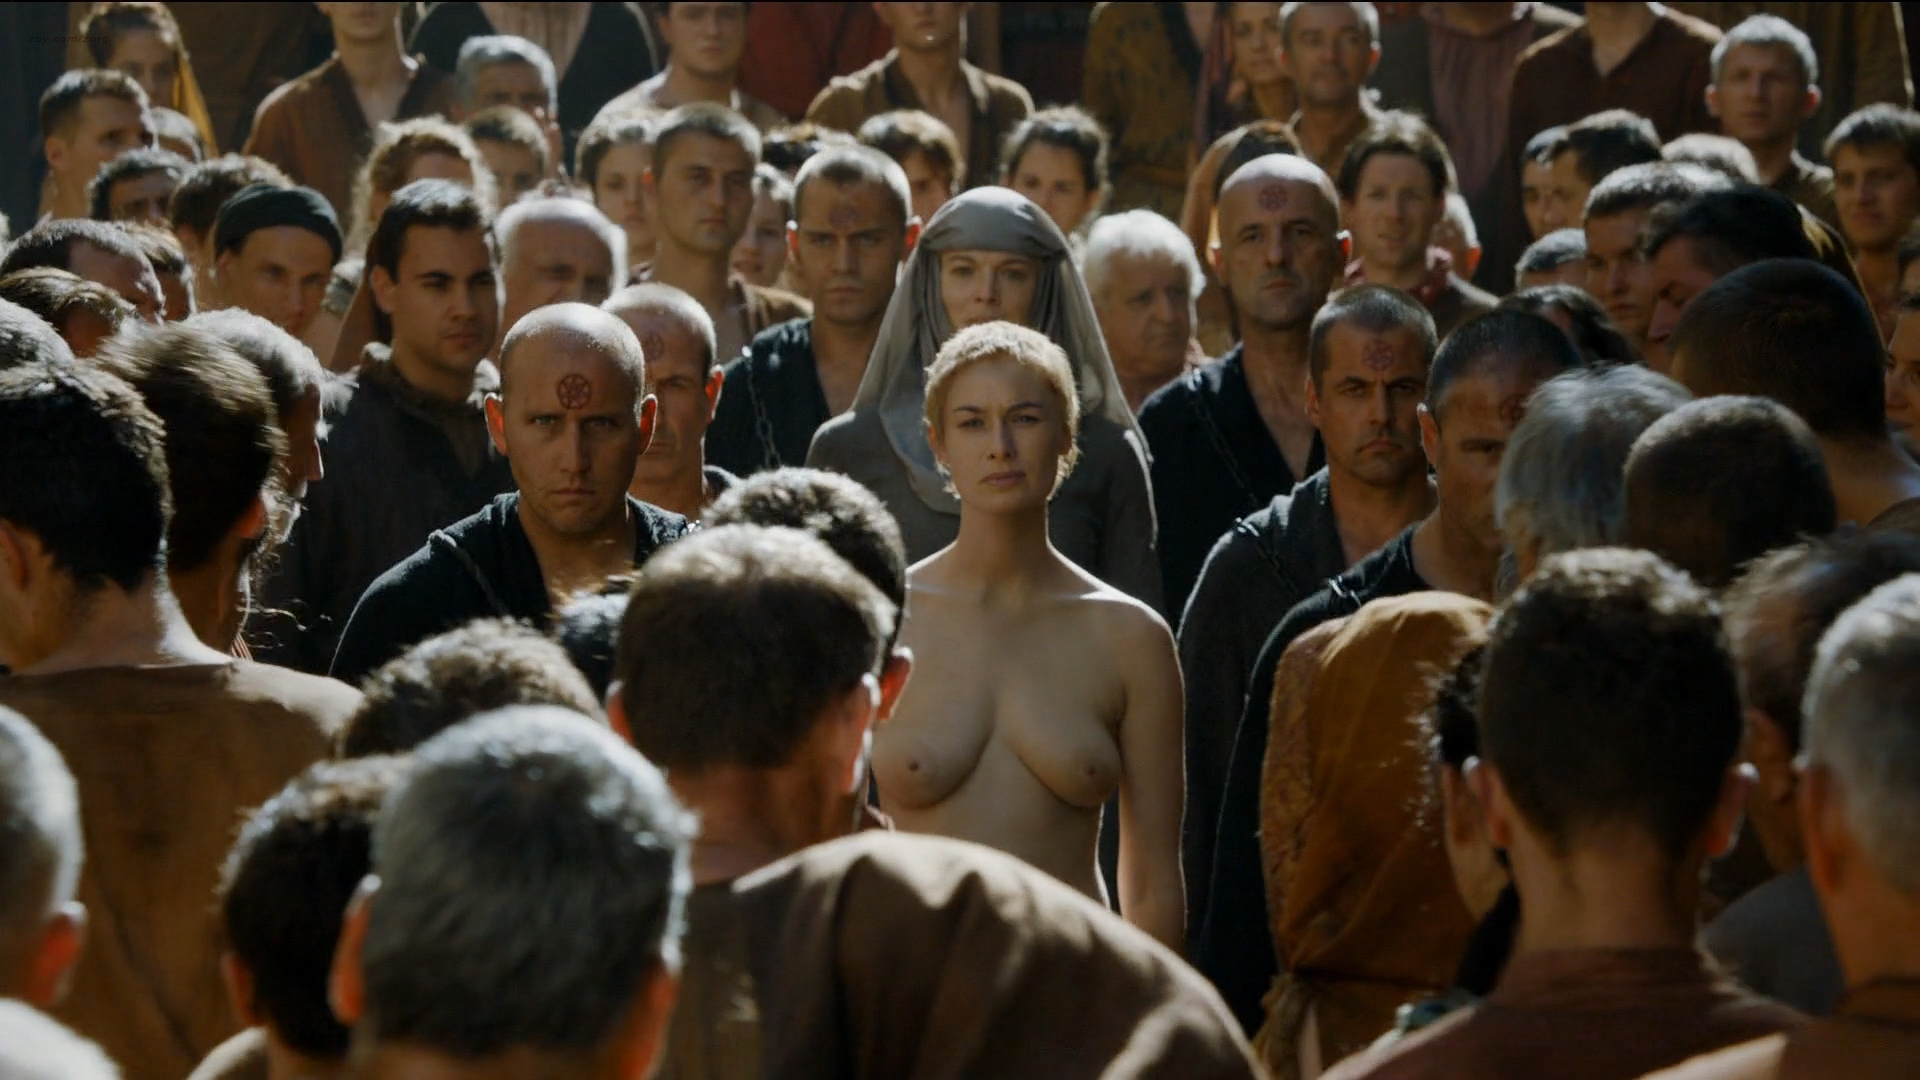 Lena Headey nude full frontal bush - Game of Thrones (2015) s5e10 hd720-1080p (15)